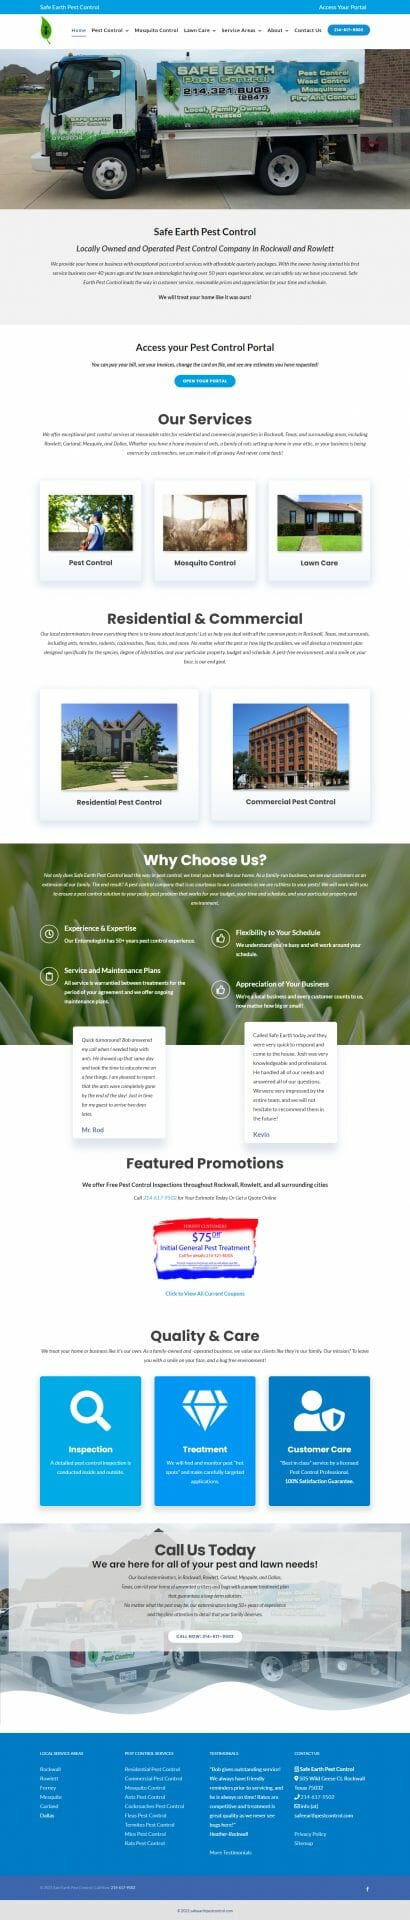 Screenshot of the full home page layout for Safe Earth Pest Control.